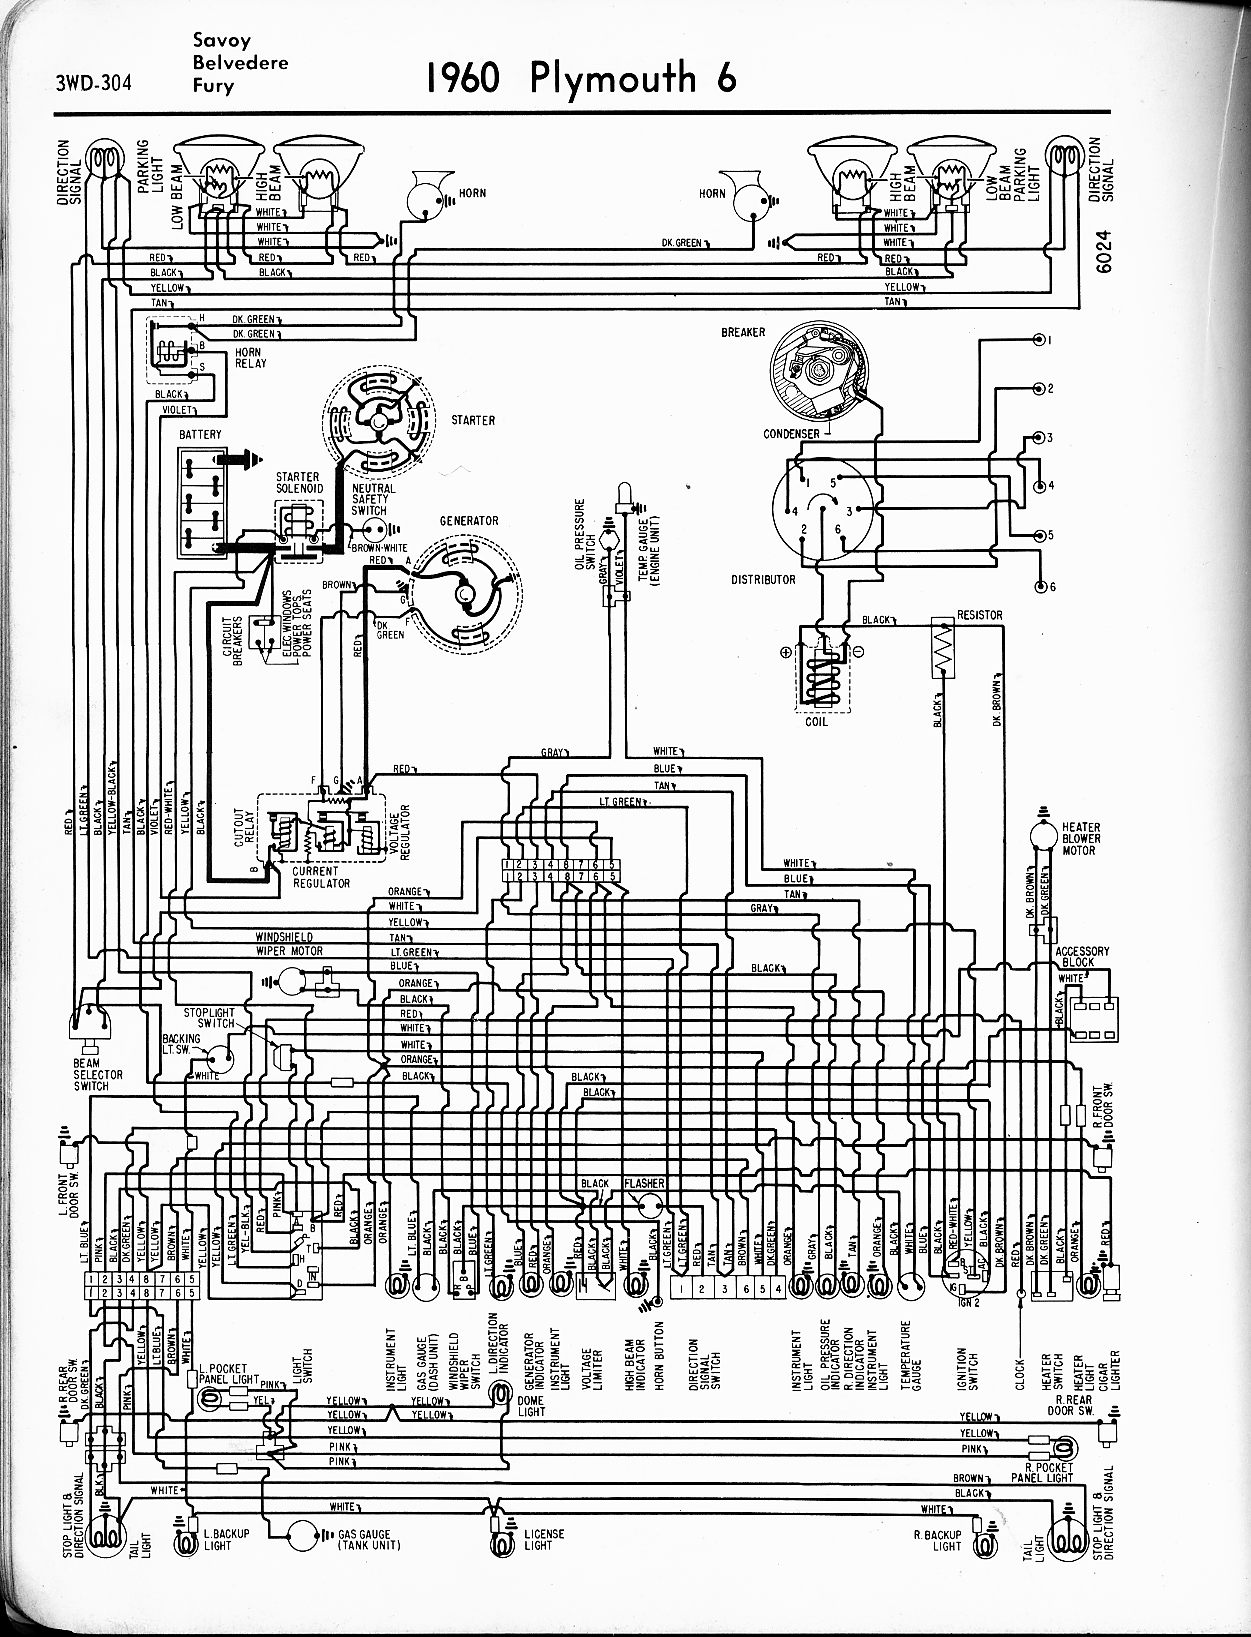 1974 plymouth duster wiring diagram 1956 - 1965 plymouth wiring - the old car manual project